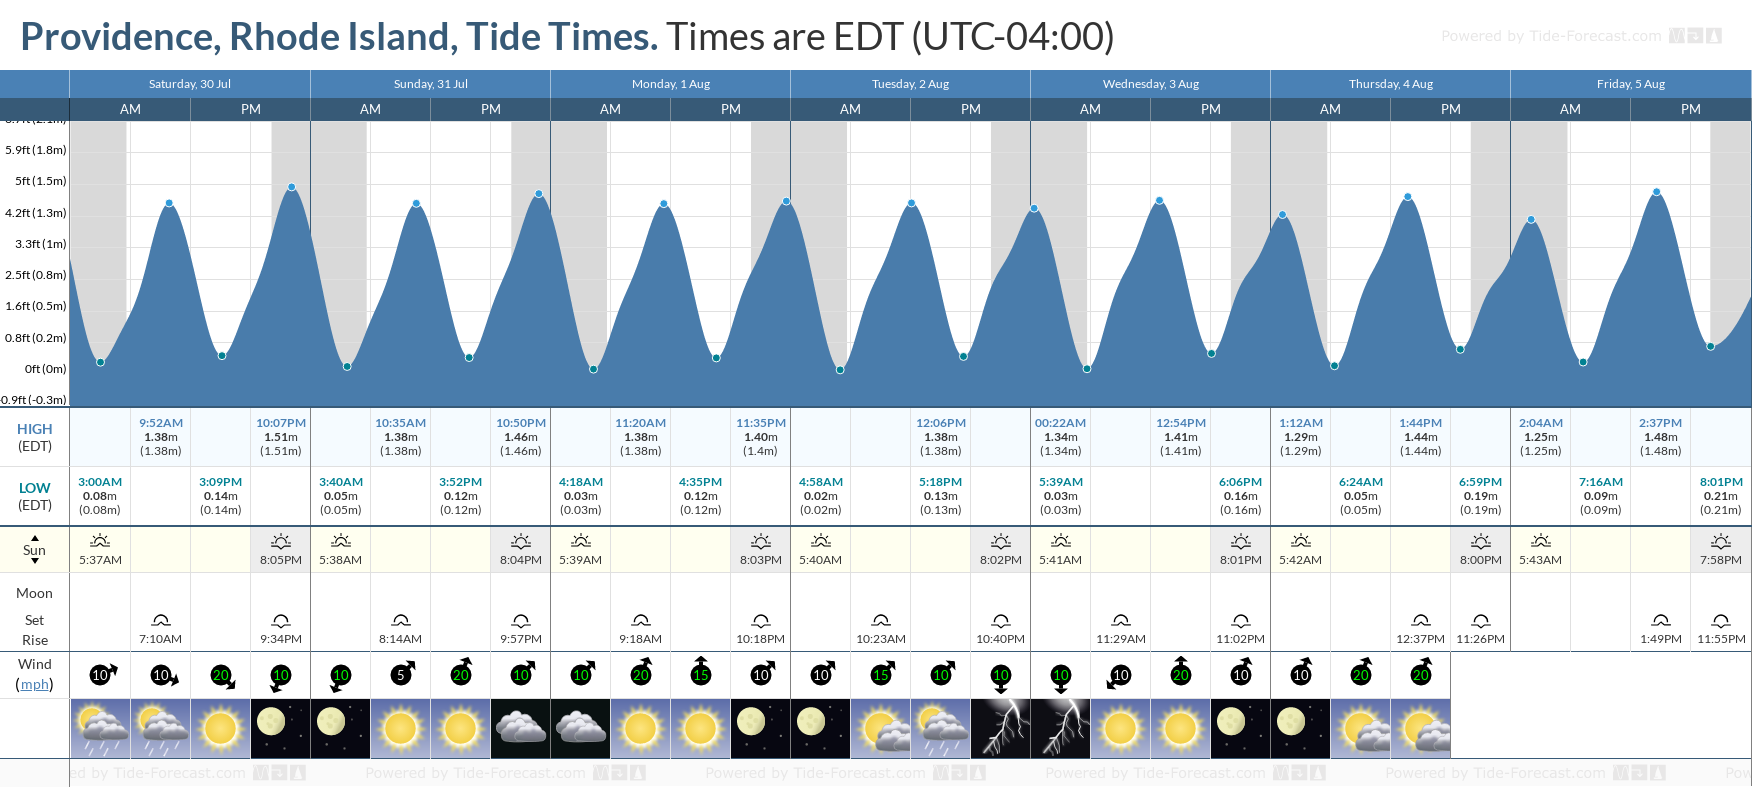 Providence, Rhode Island Tide Chart including high and low tide tide times for the next 7 days